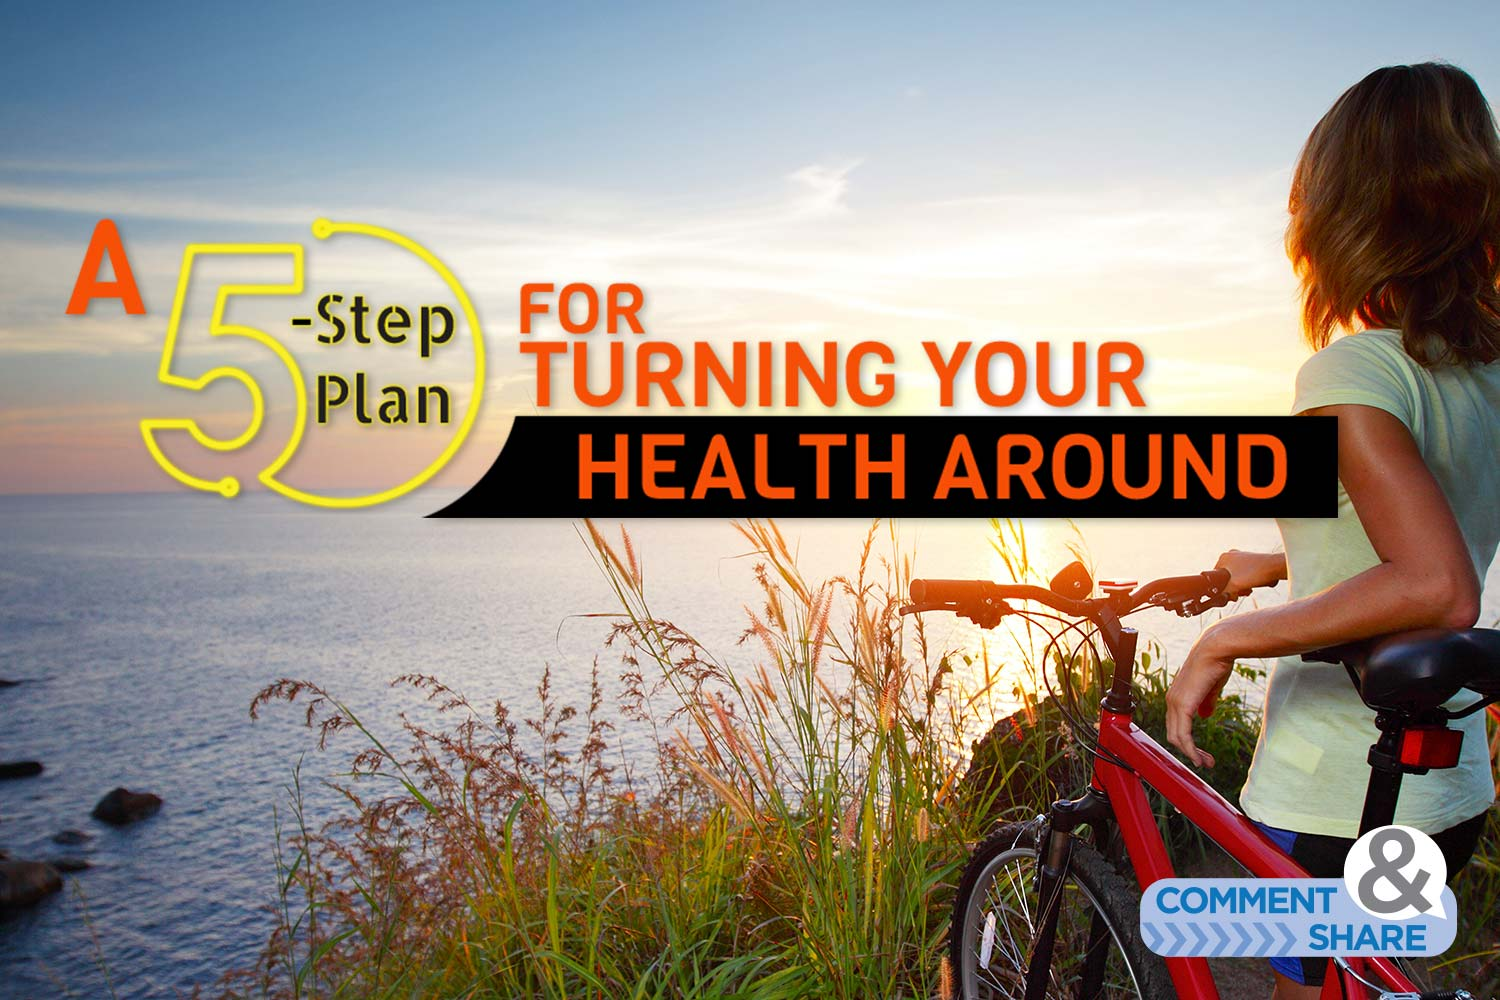 A 5-Step Plan for Turning Your Health Around